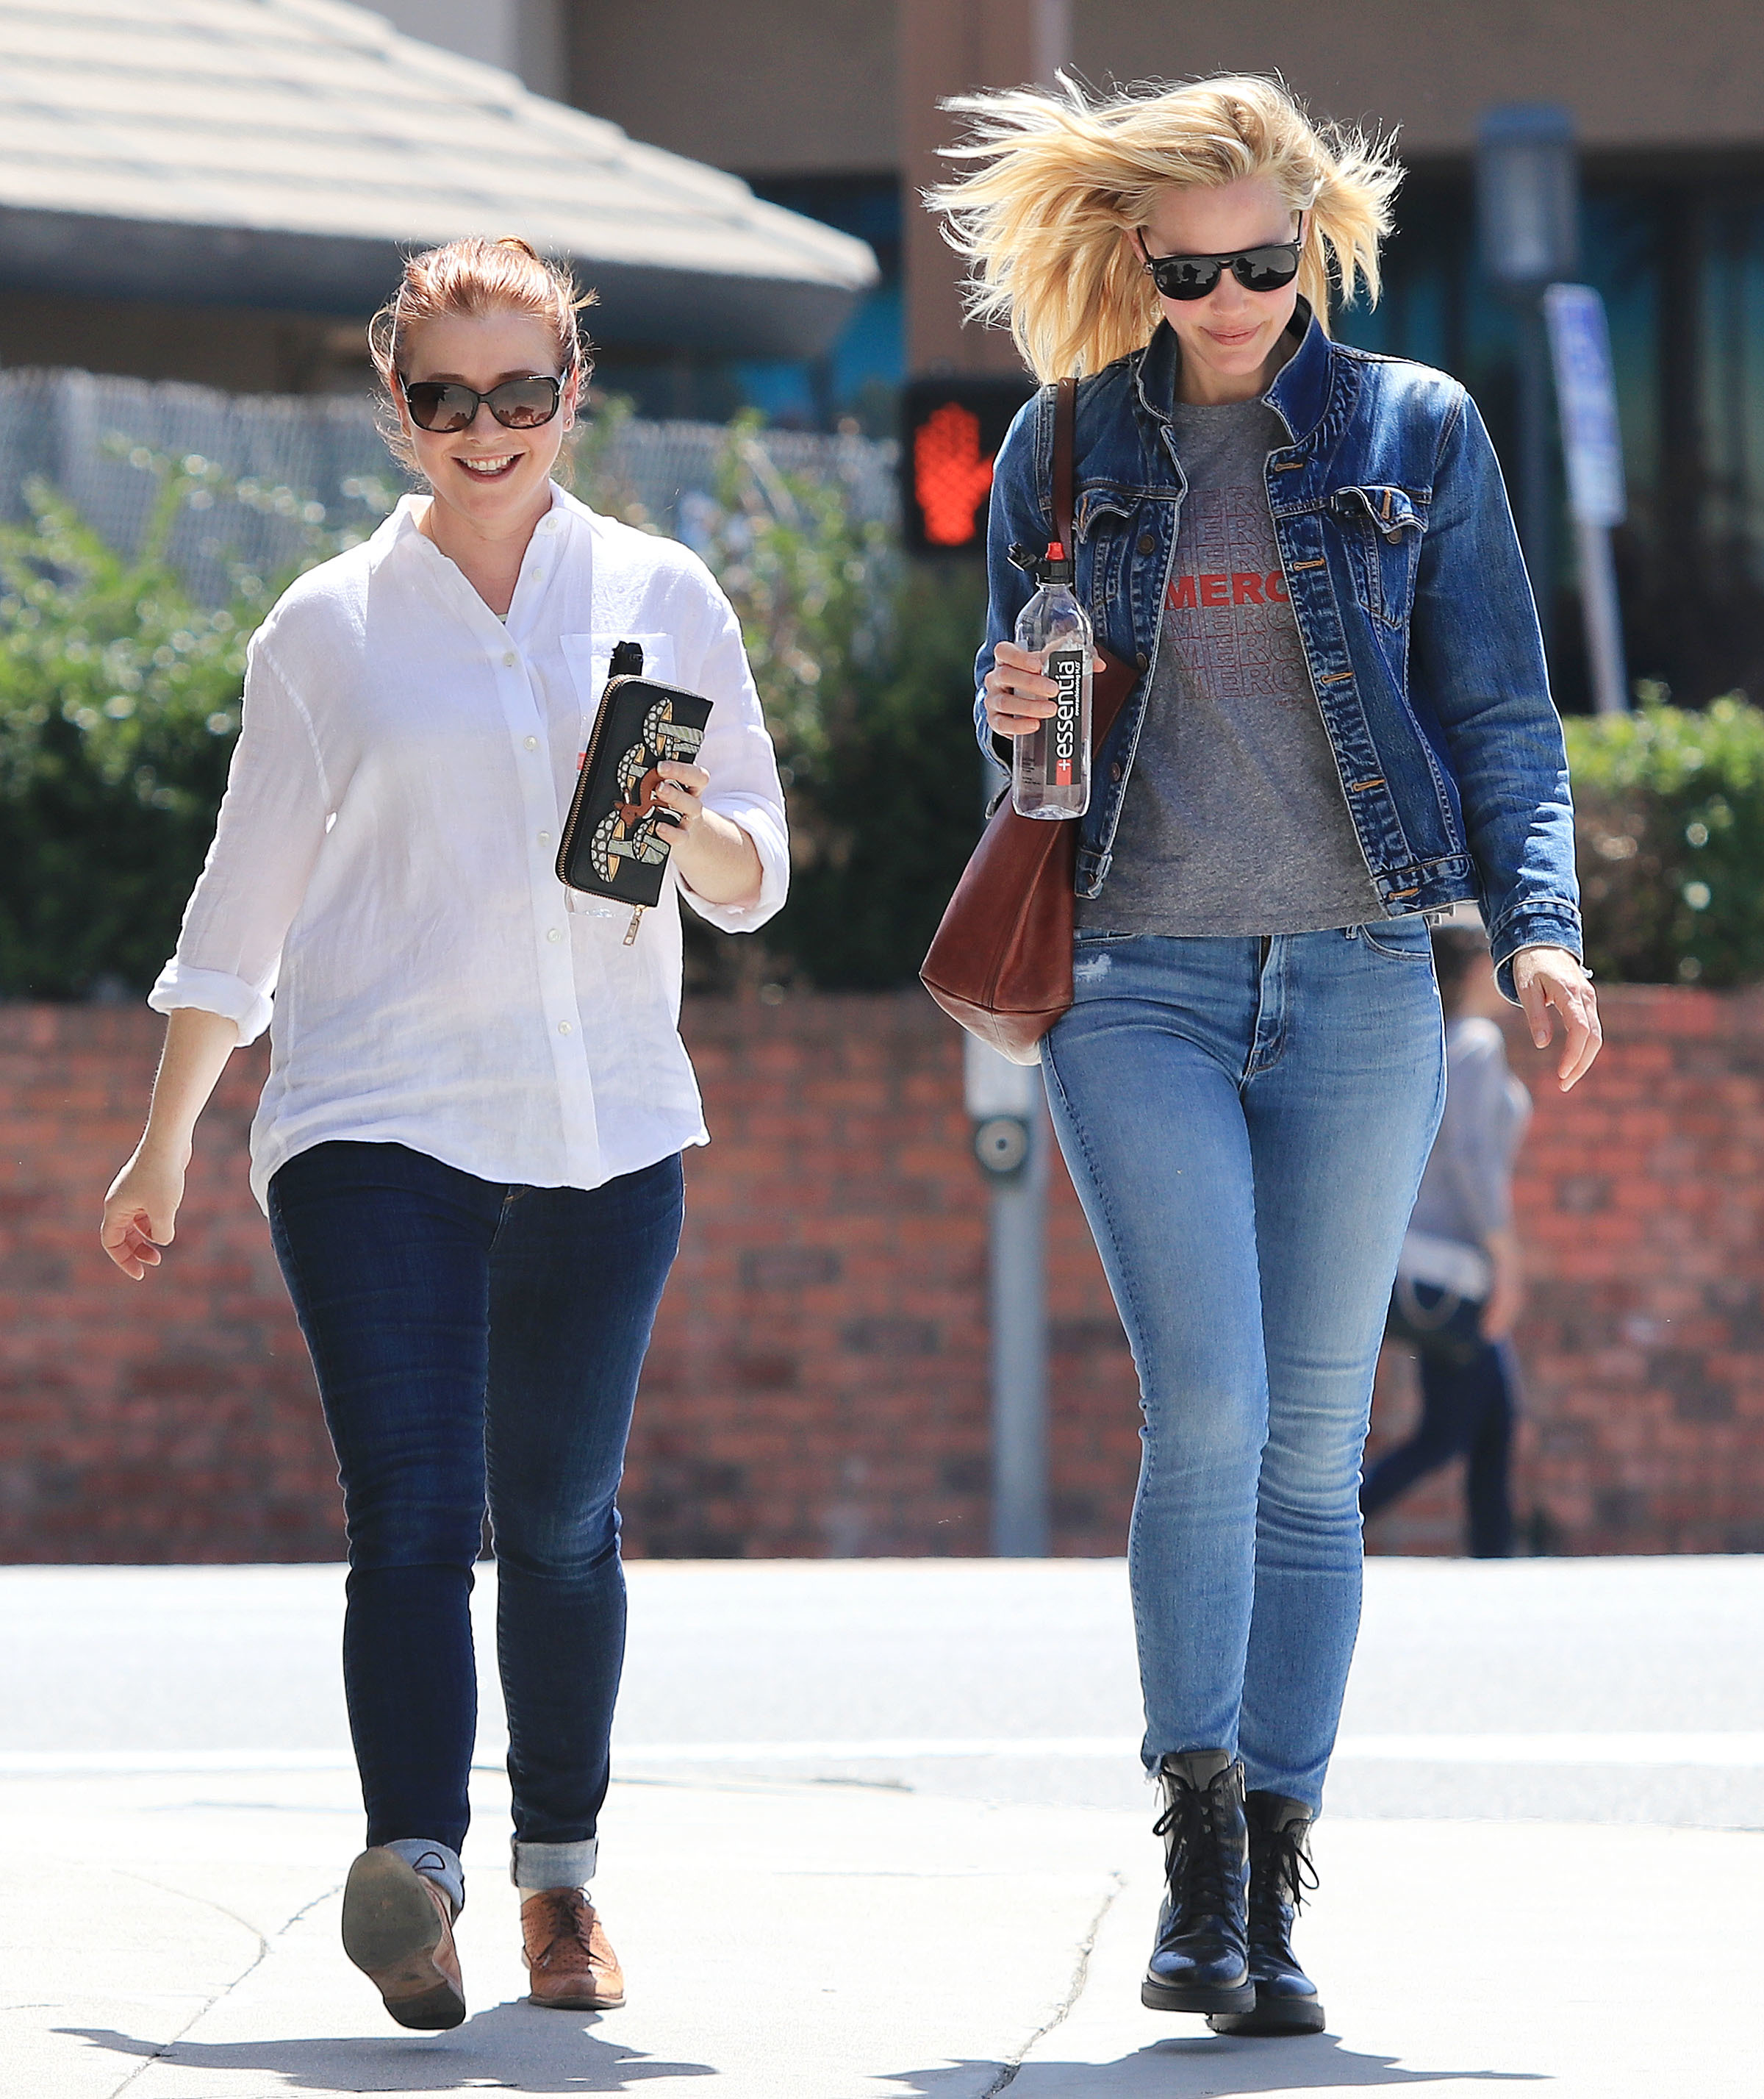 Alyson Hannigan and Leslie Bibb are spotted out and about in Los Angeles on April 10, 2018.